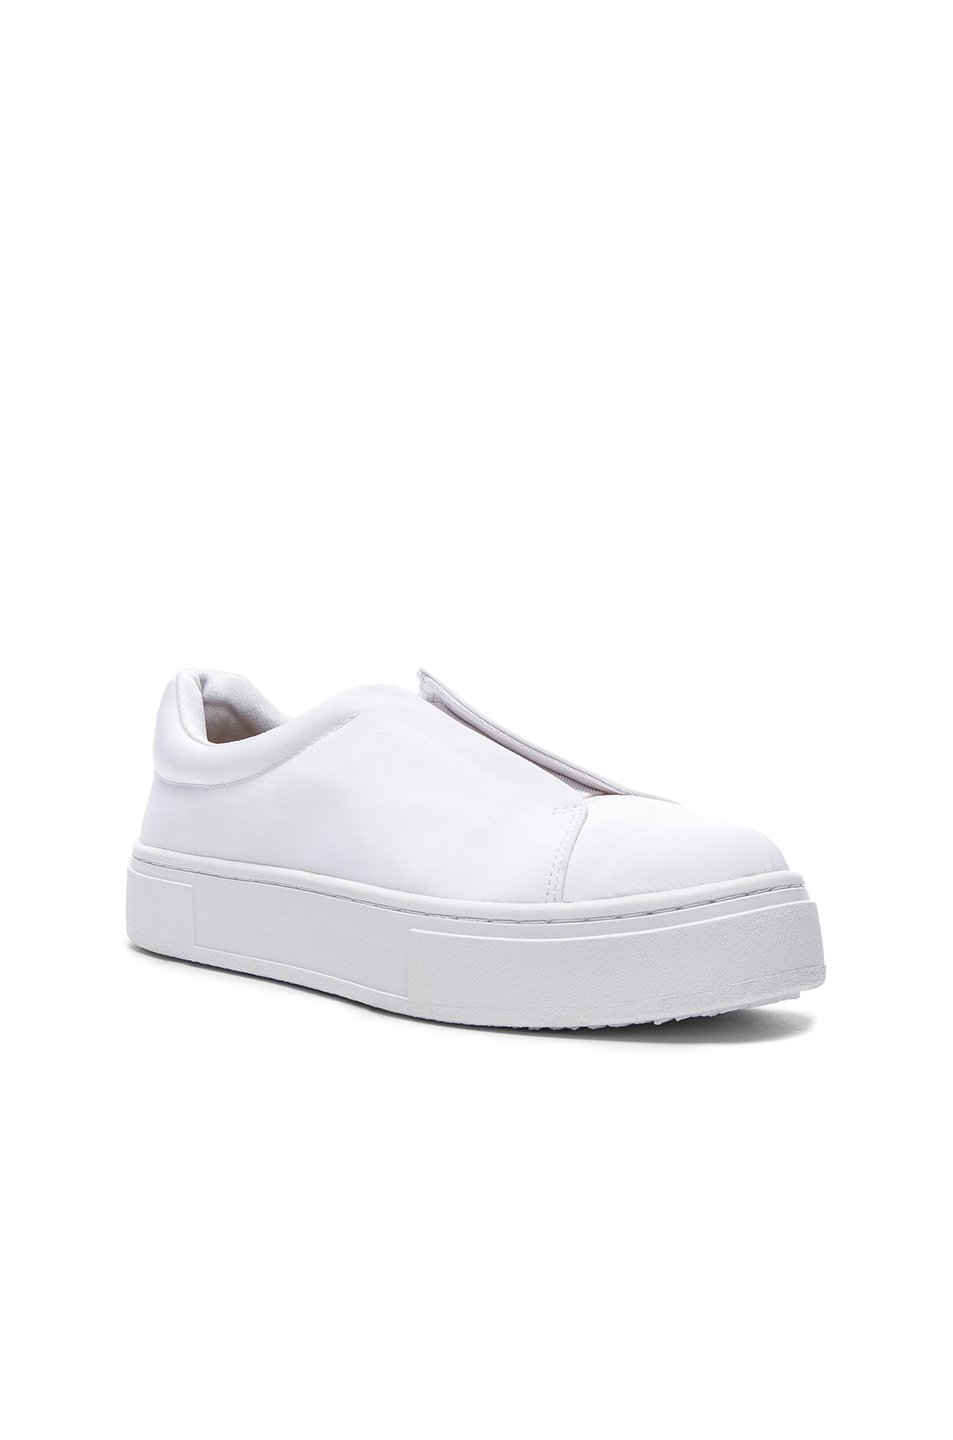 Eytys Grosgrain Doja Sneakers in White